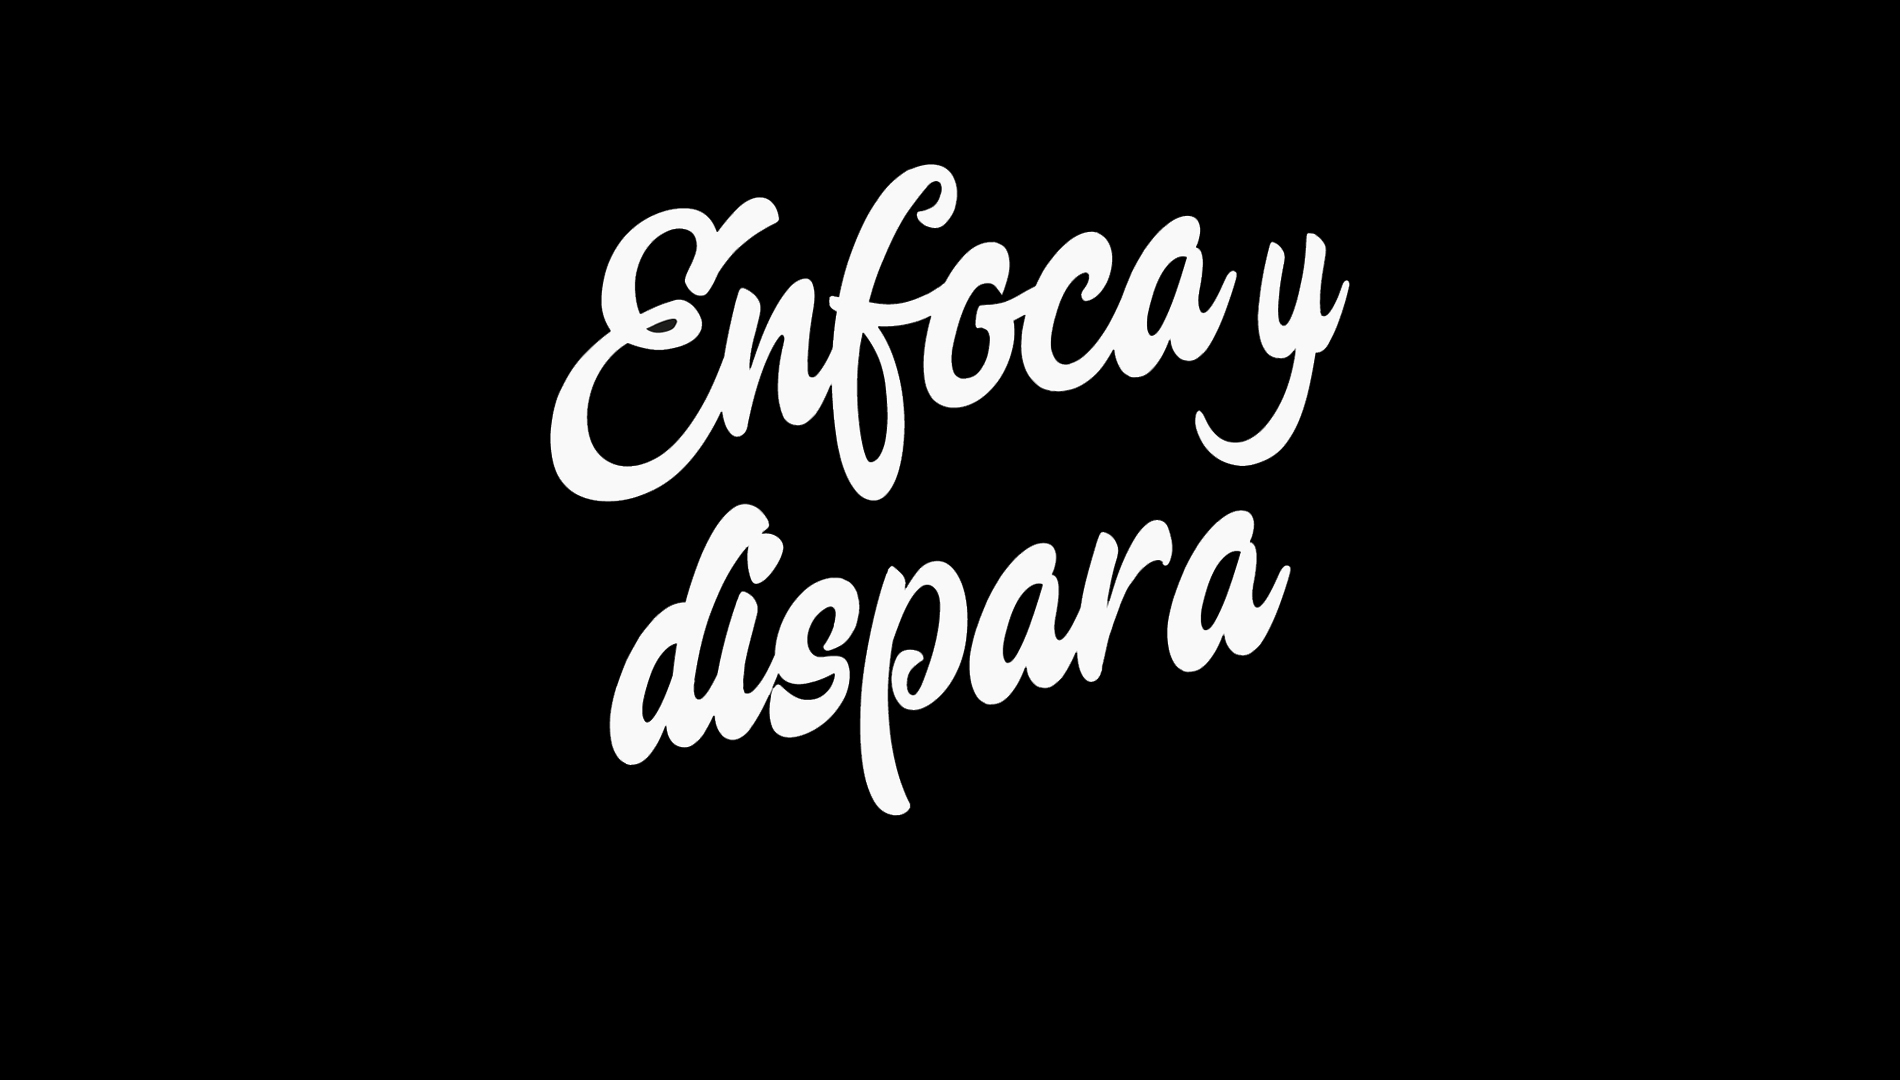 Enfoca y dispara